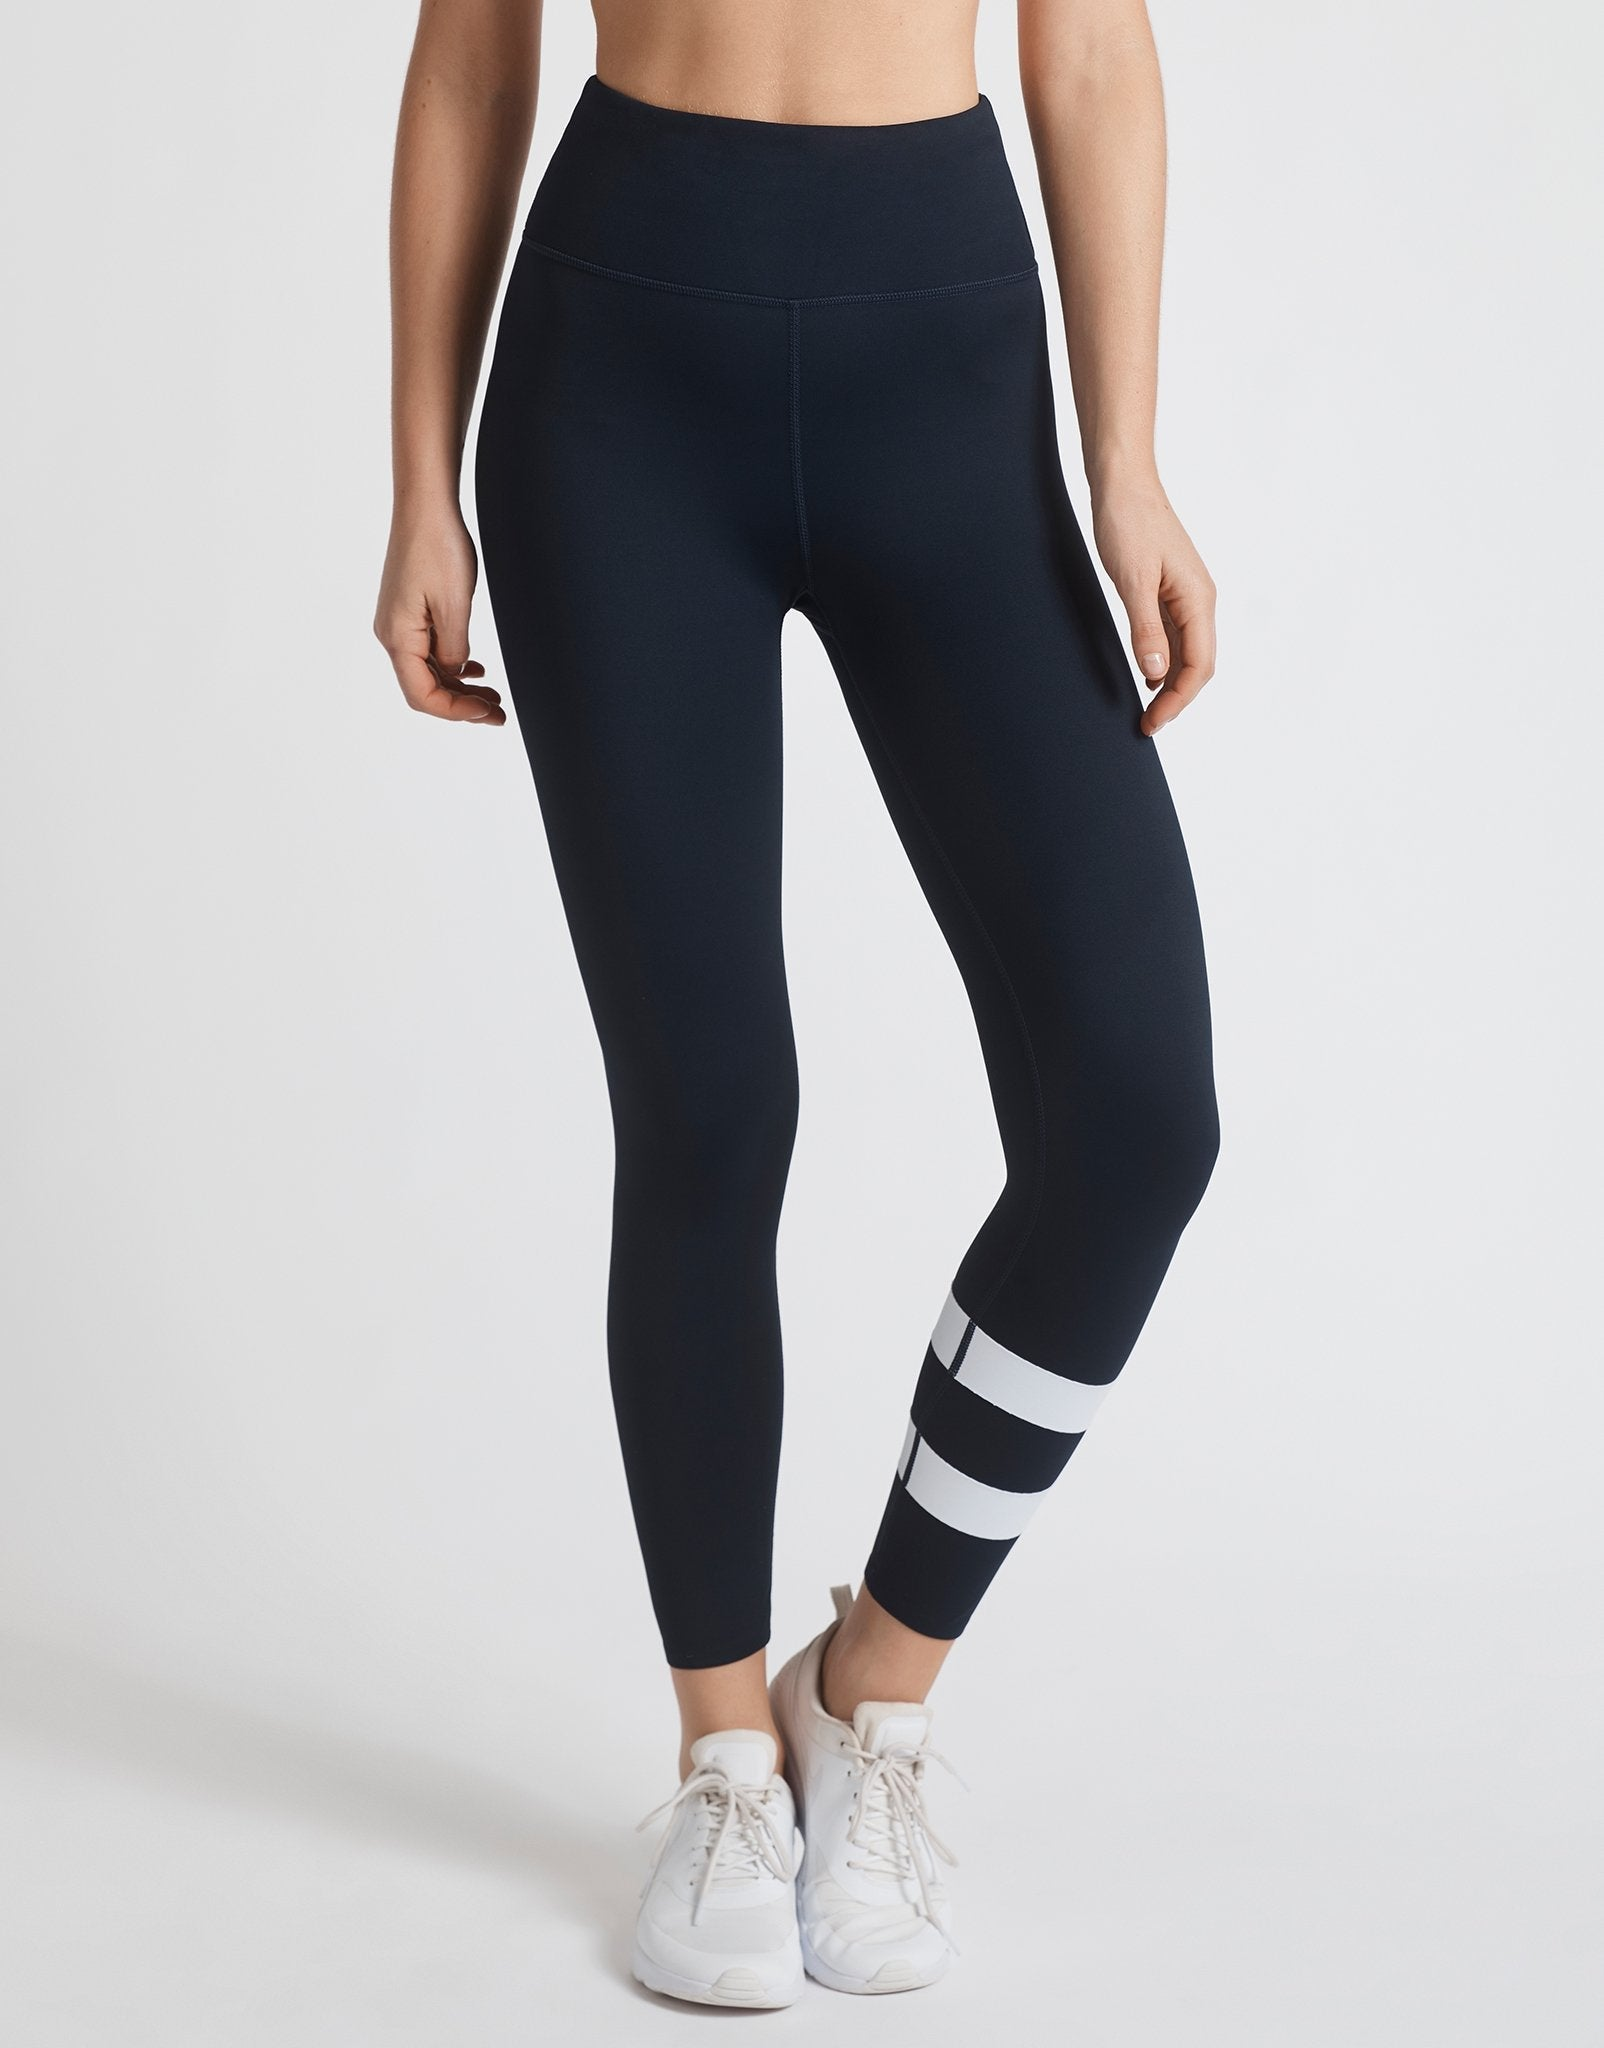 Lilybod-Imogen-Midnight-Navy-Stripe-Legging-side2.jpg